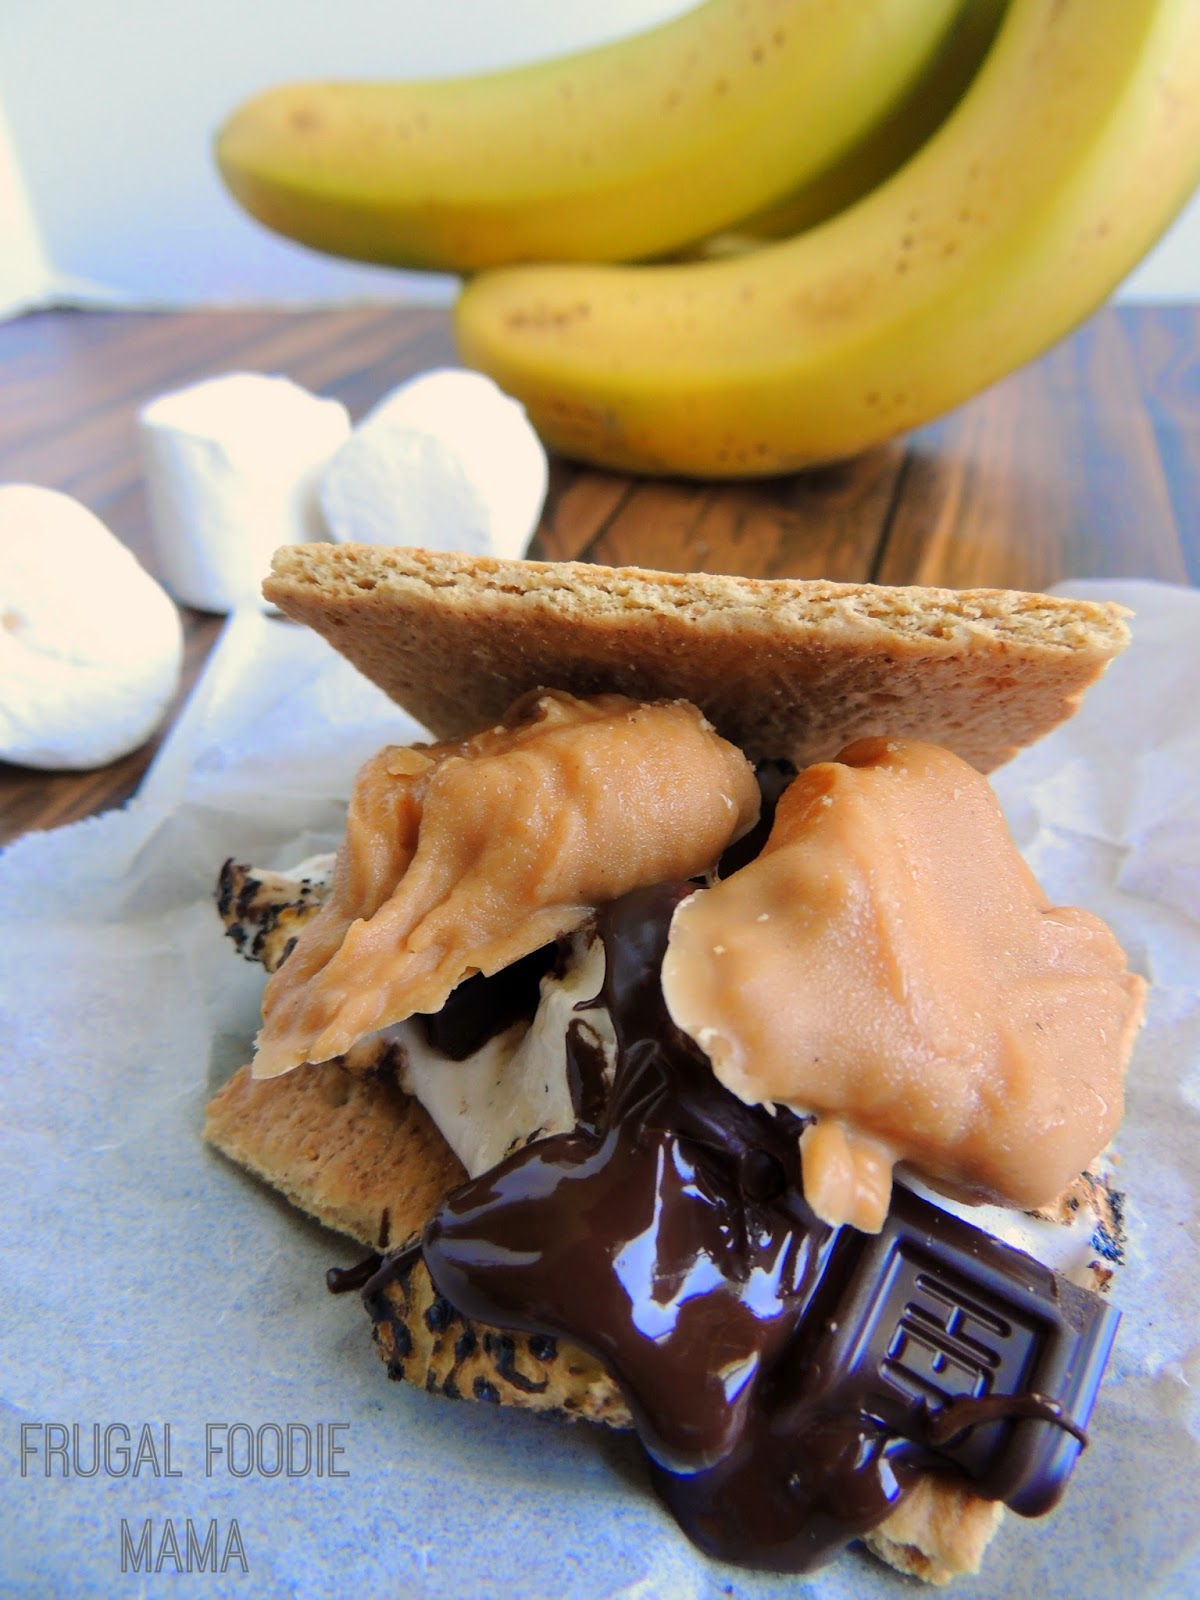 When you add a little fluffernutter action to classic s'mores by adding some peanut butter coated banana slices, you get something truly and deliciously amazing- Fluffernutter Banana S'mores.